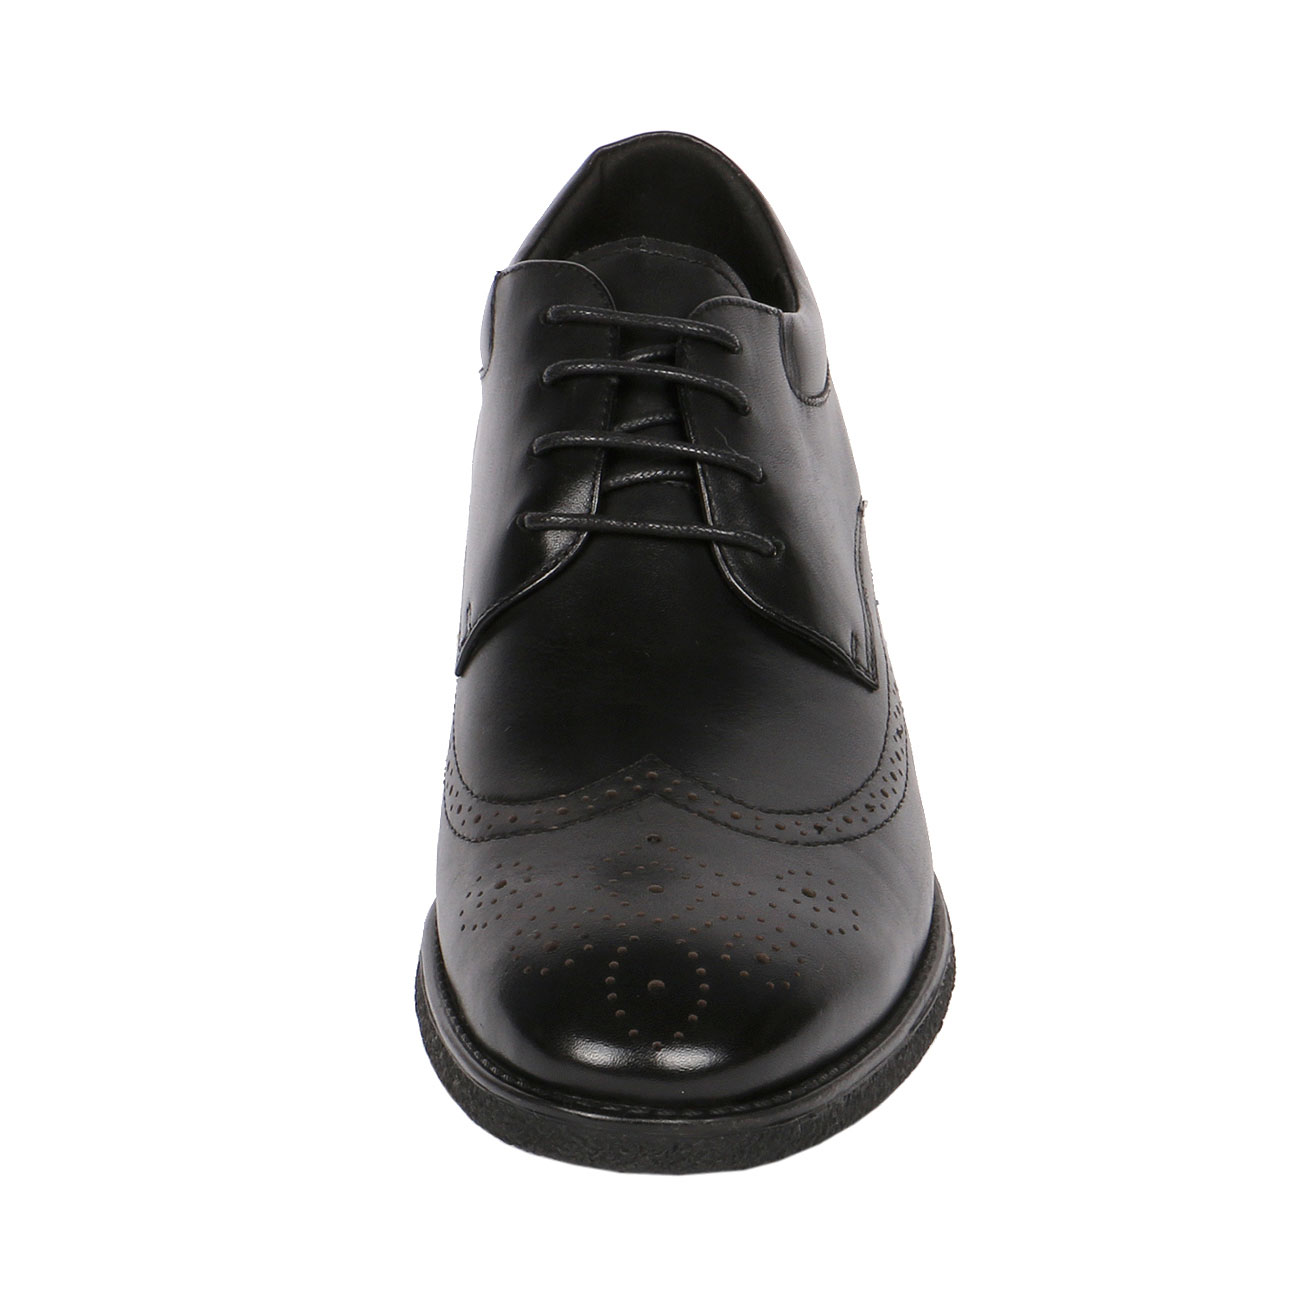 Handsome Leather Shapes a Punching Wingtip with Height Elevation, CYD21